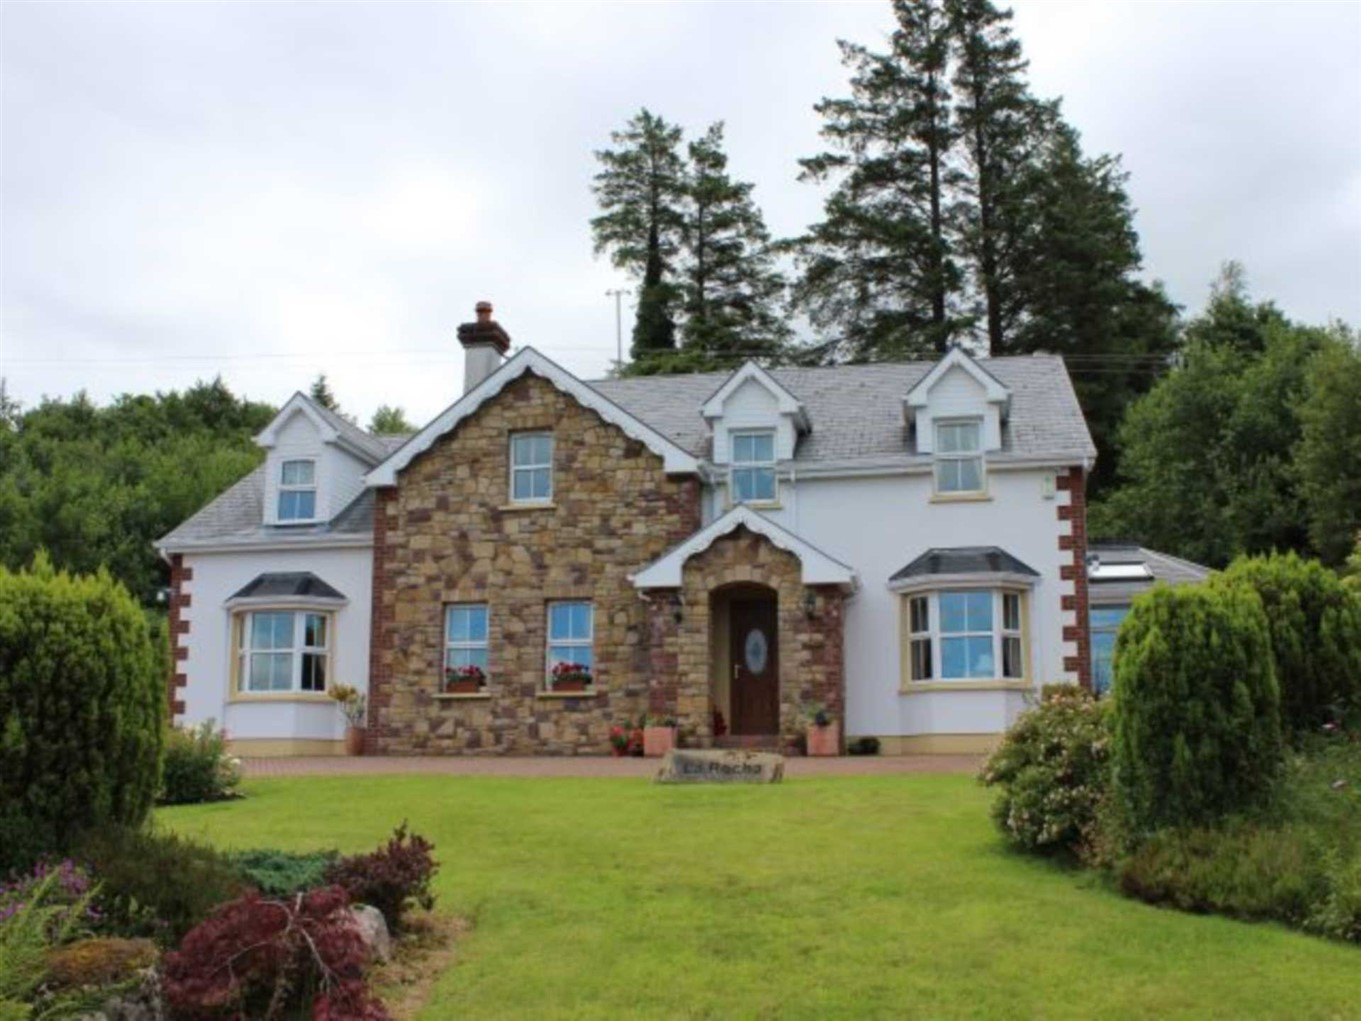 House for sale 5 bedrooms in driminnin donegal donegal town donegal findahome ie